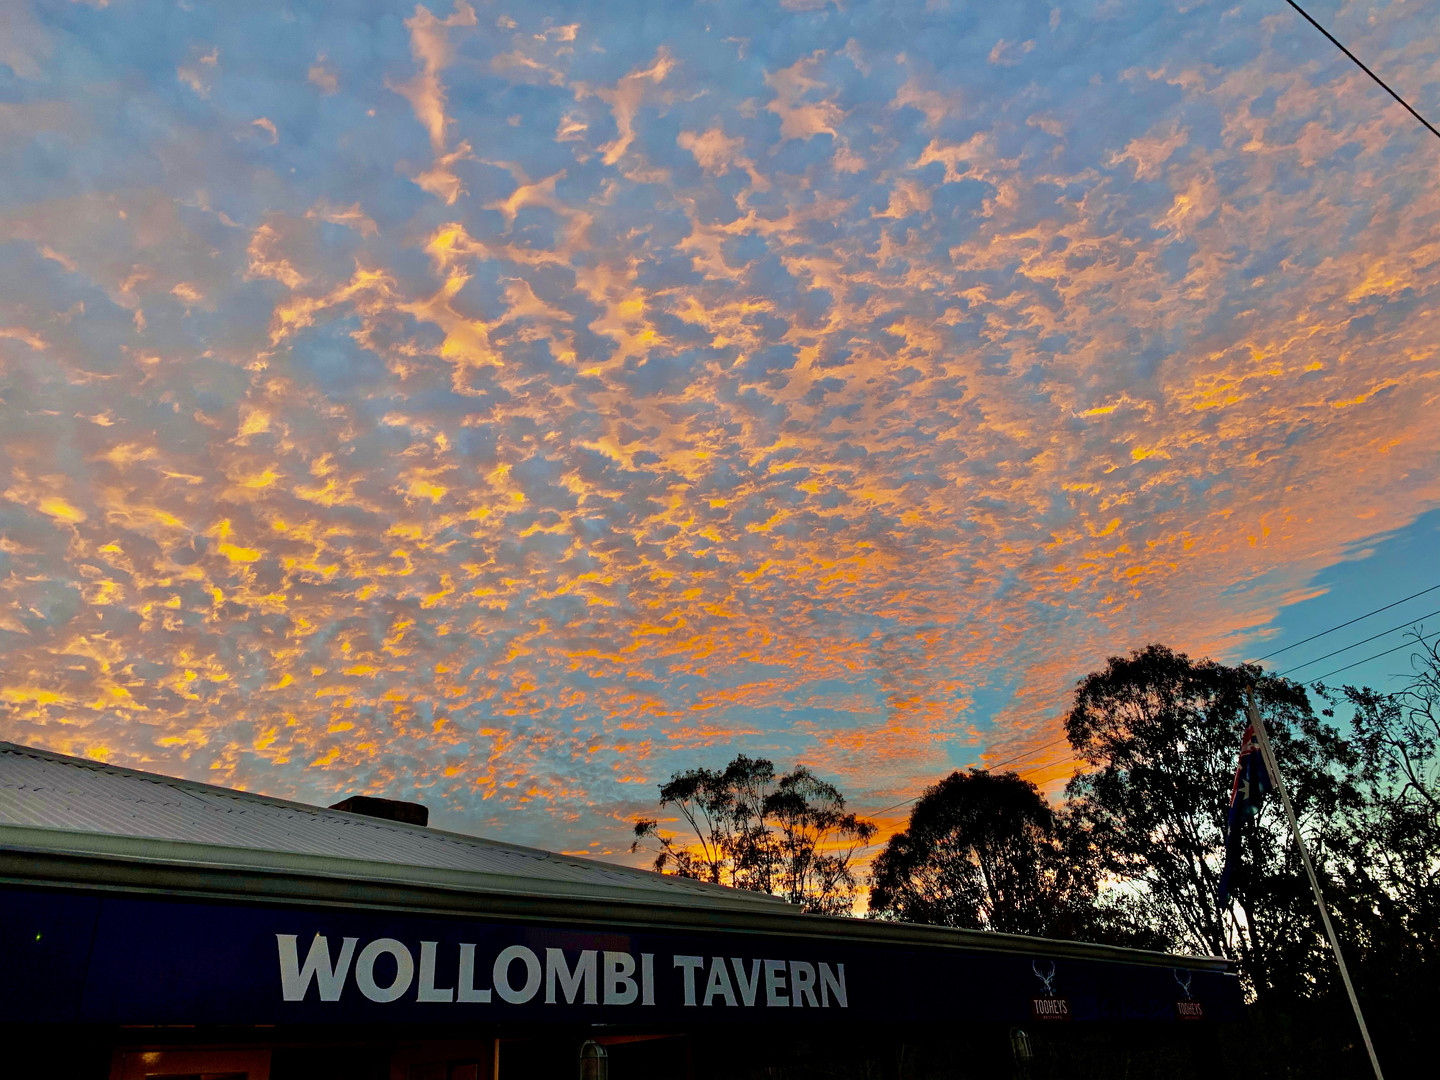 The Wollombi Tavern - home to Dr Jurd's Jungle Juice and only a short drive from Wollombi Farm